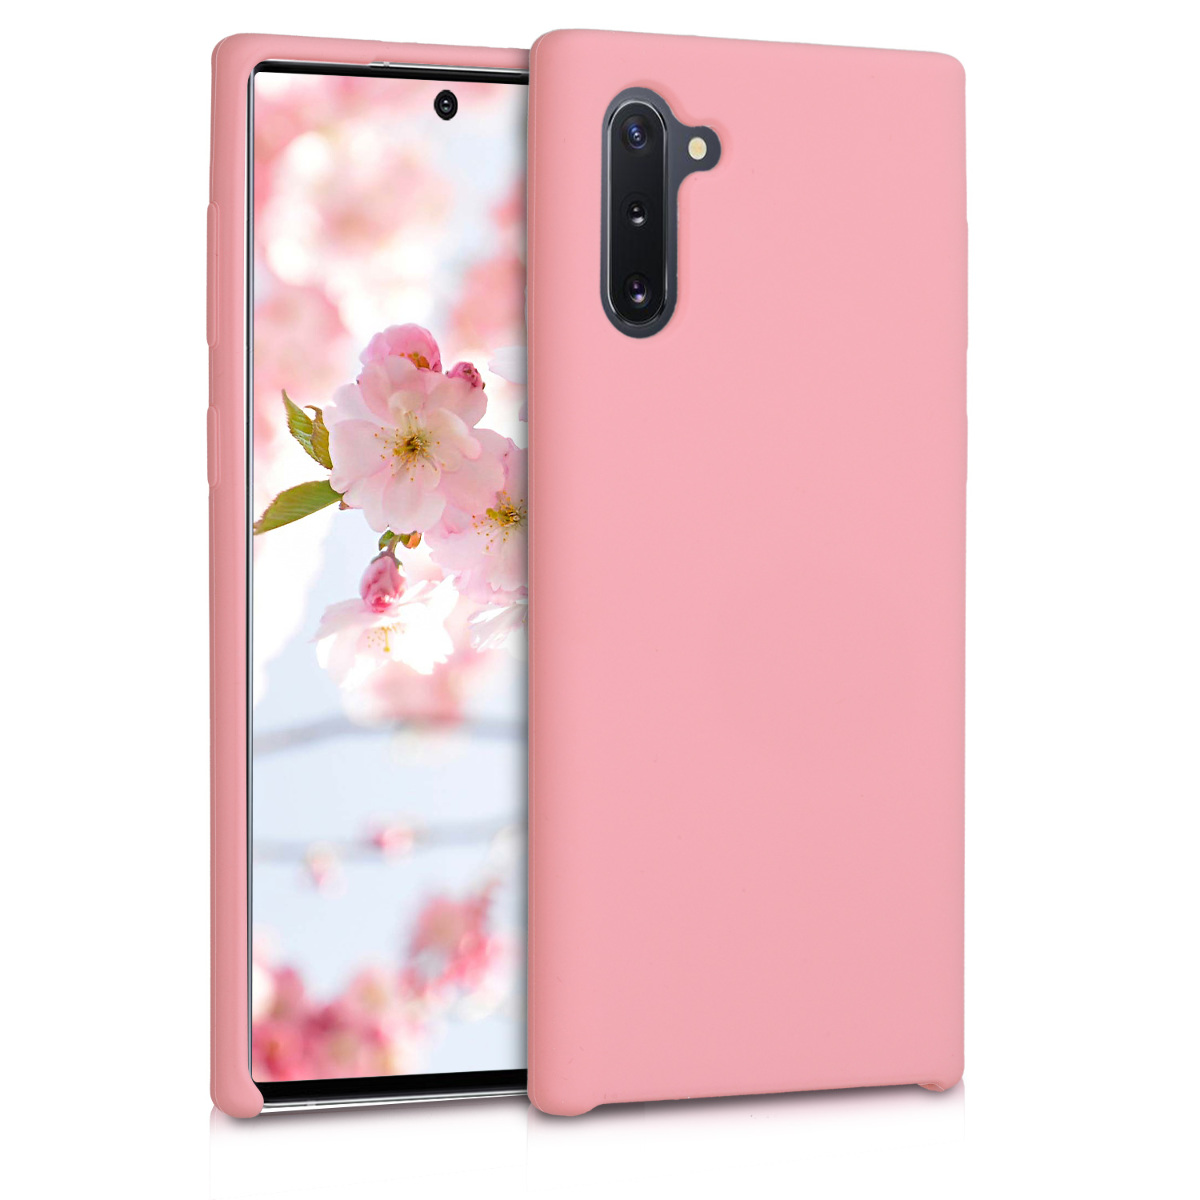 KW Θήκη Σιλικόνης Samsung Galaxy Note 10 - Soft Flexible Rubber Protective Cover - Light Pink Matte (49955.123)